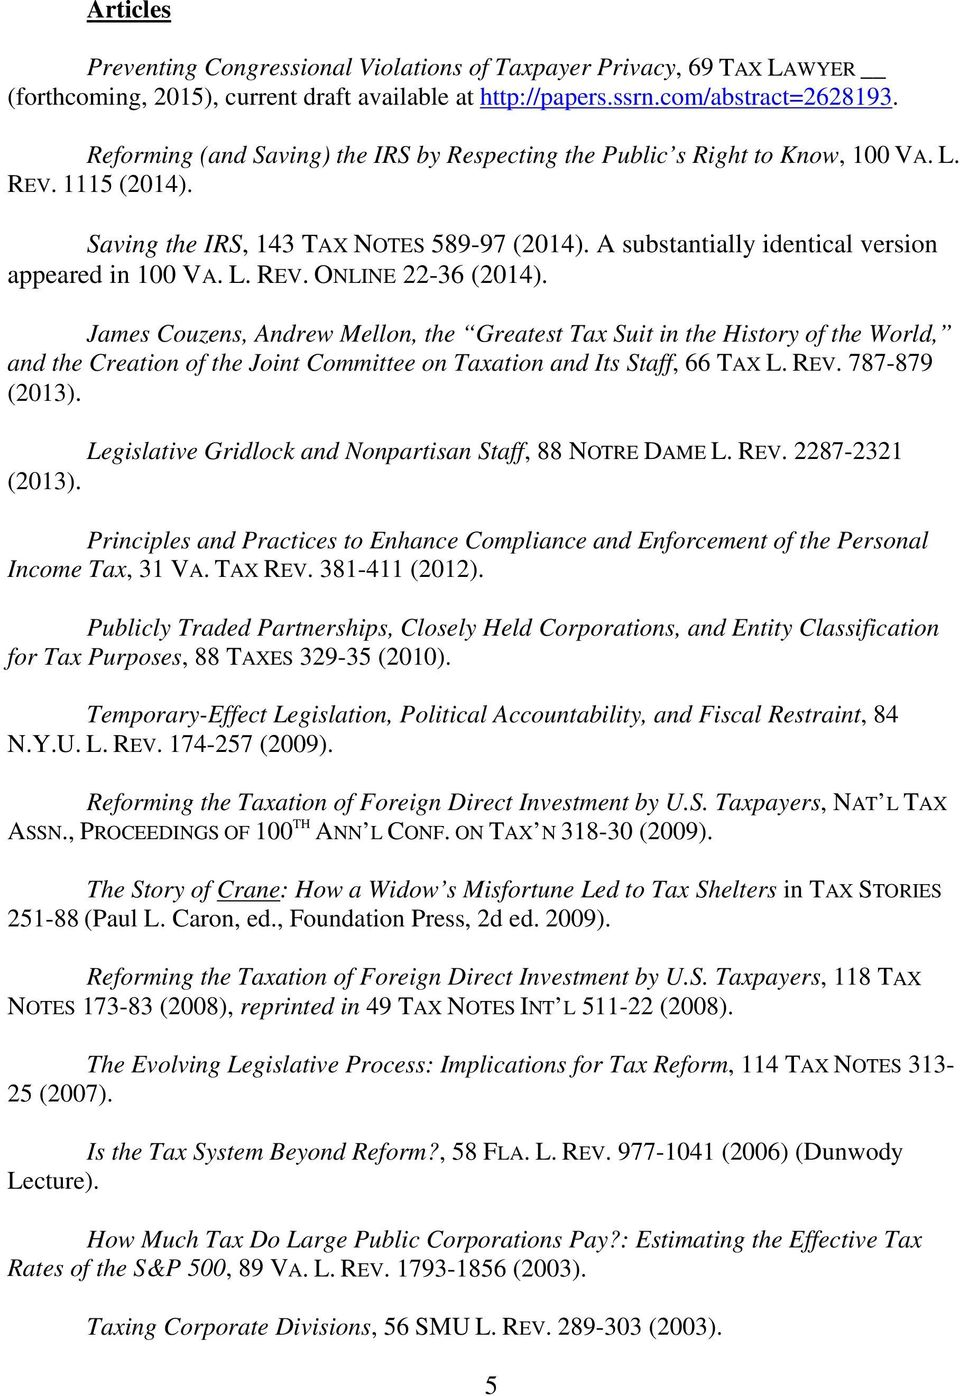 L. REV. ONLINE 22-36 (2014). James Couzens, Andrew Mellon, the Greatest Tax Suit in the History of the World, and the Creation of the Joint Committee on Taxation and Its Staff, 66 TAX L. REV. 787-879 (2013).